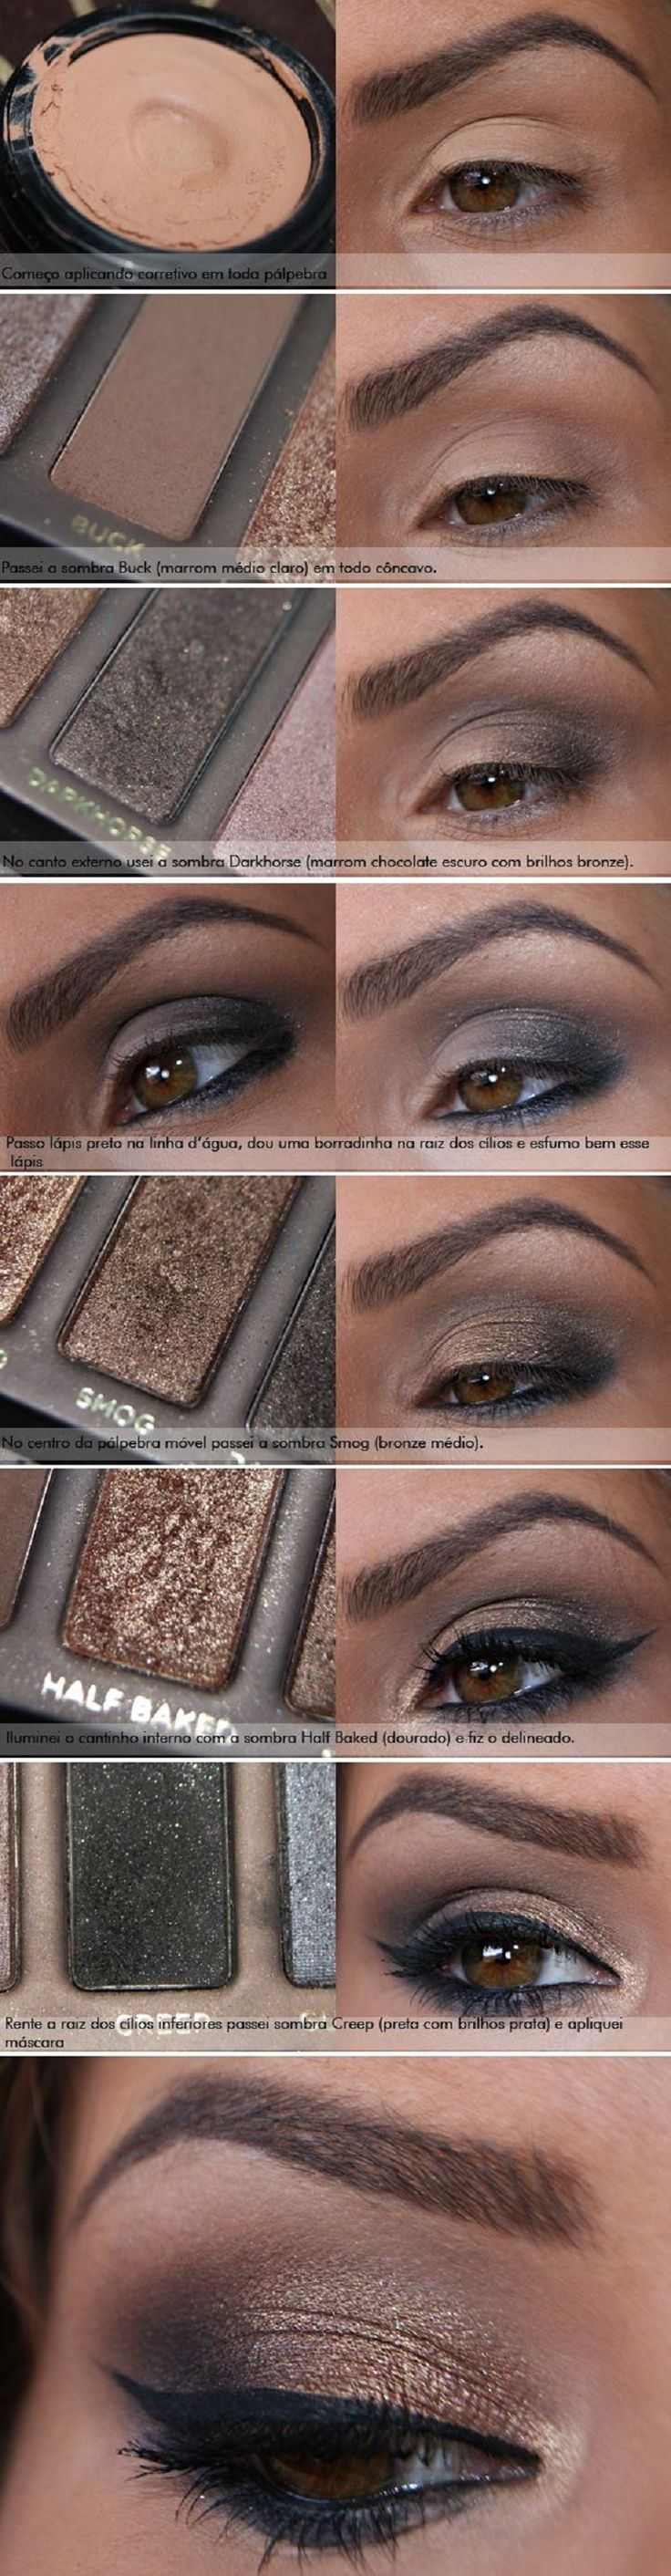 Best Ideas For Makeup Tutorials    Picture    Description  Naked 1 has to be one of my fav palettes. 10 Brown Eyeshadow Tutorials for…    - #Makeup https://glamfashion.net/beauty/make-up/best-ideas-for-makeup-tutorials-naked-1-has-to-be-one-of-my-fav-palettes-10-brown-eyeshadow-tutorials-for-3/